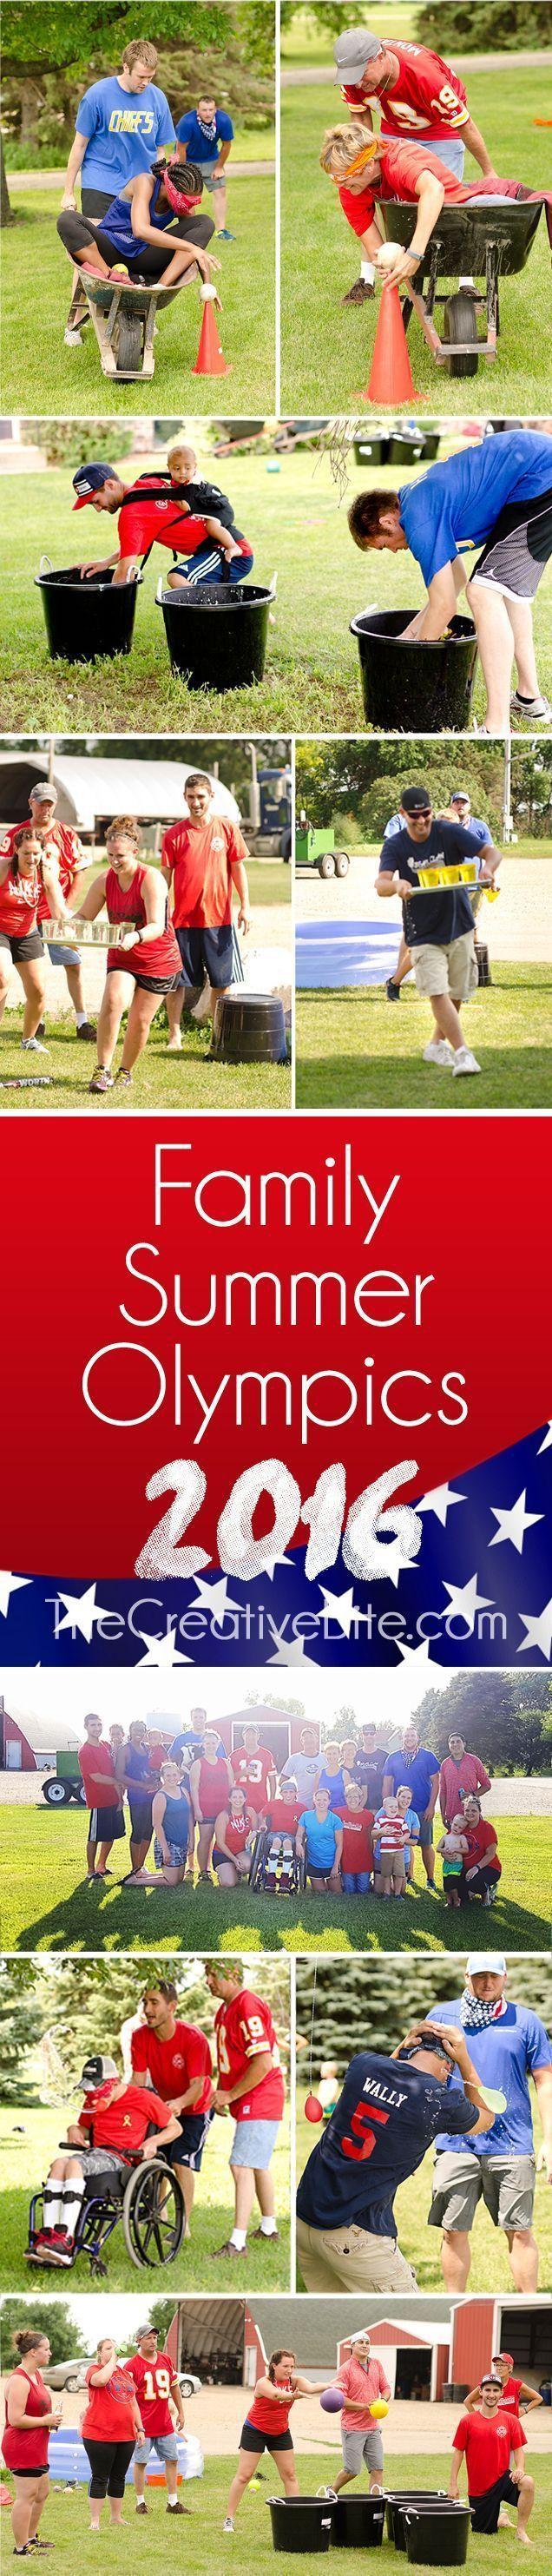 Maillot de bain : Family Summer Olympics are an annual family tradition and an excuse to spend